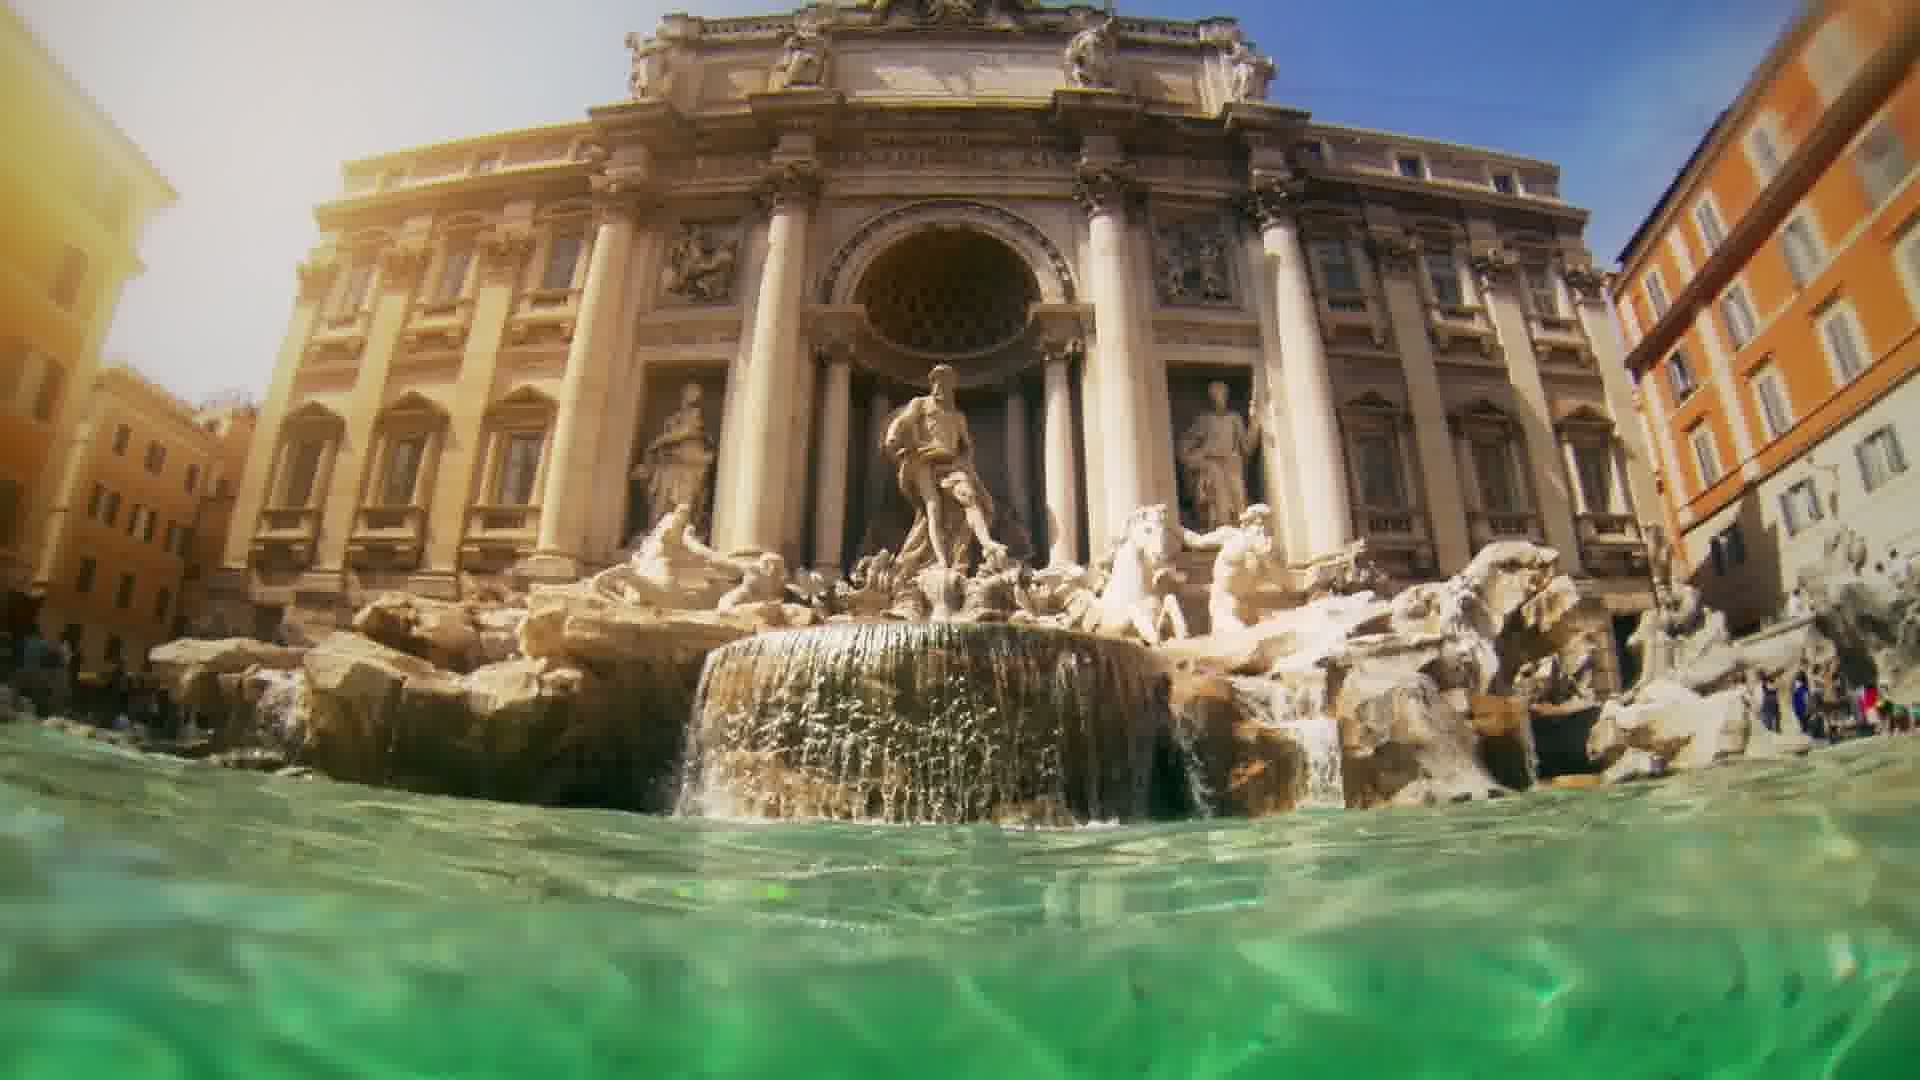 Trevi Fountain, Rome, Italy (Фонтан, Италия Рим) без смс